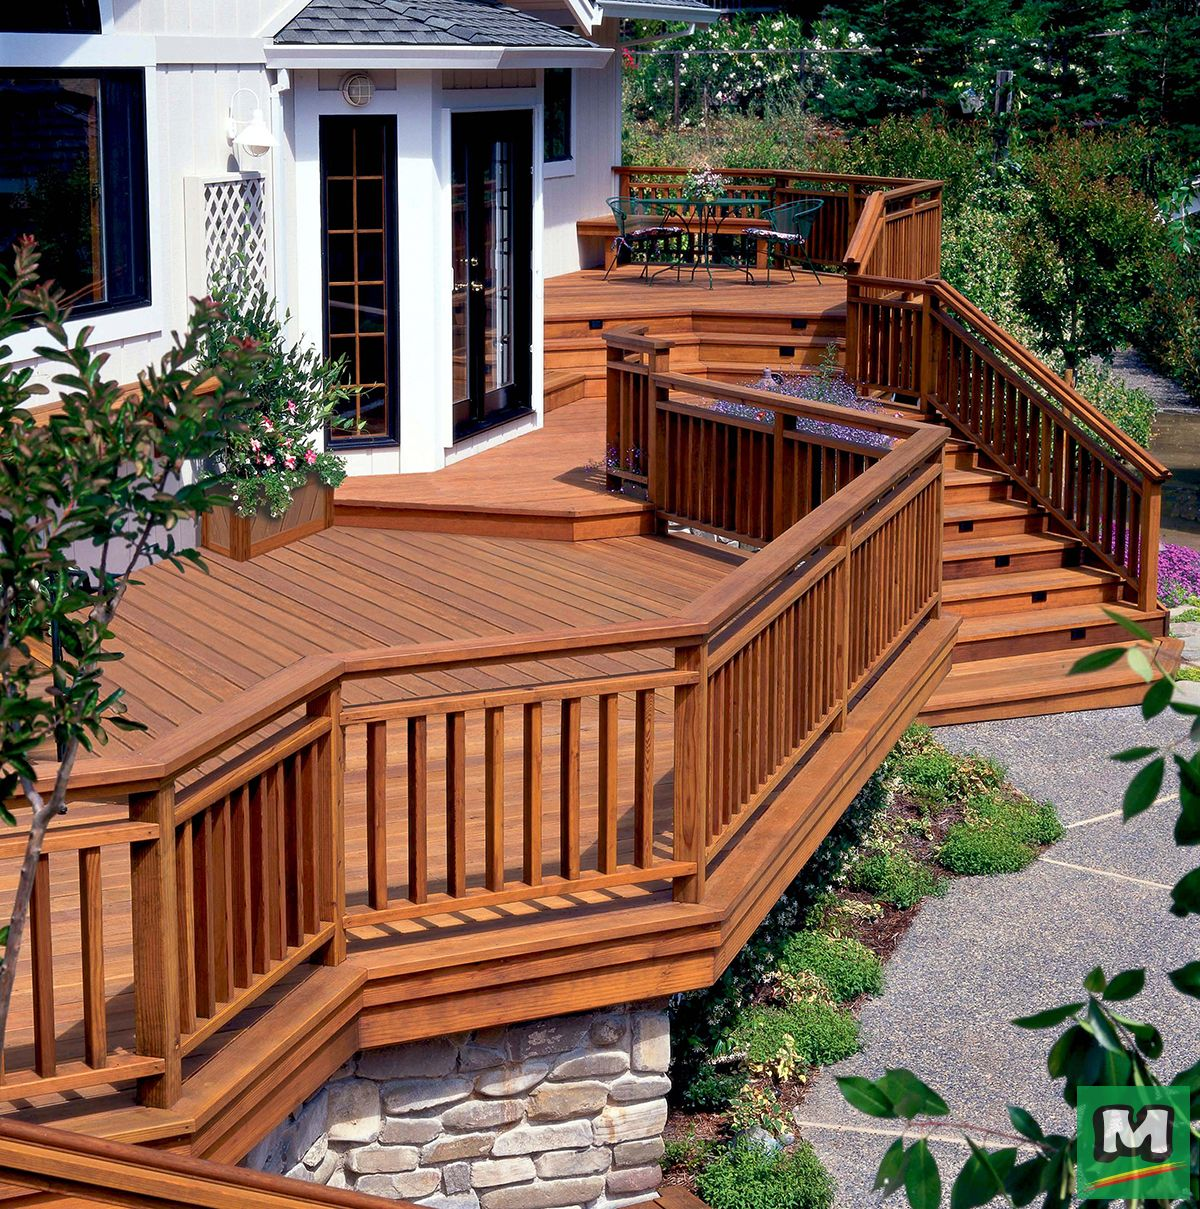 Ac2 Cedartone Premium Pressure Treated Decking Is Truly A Premium Product Its Rich Color Provides A Pressure Treated Deck Outdoor Areas Outdoor Living Space